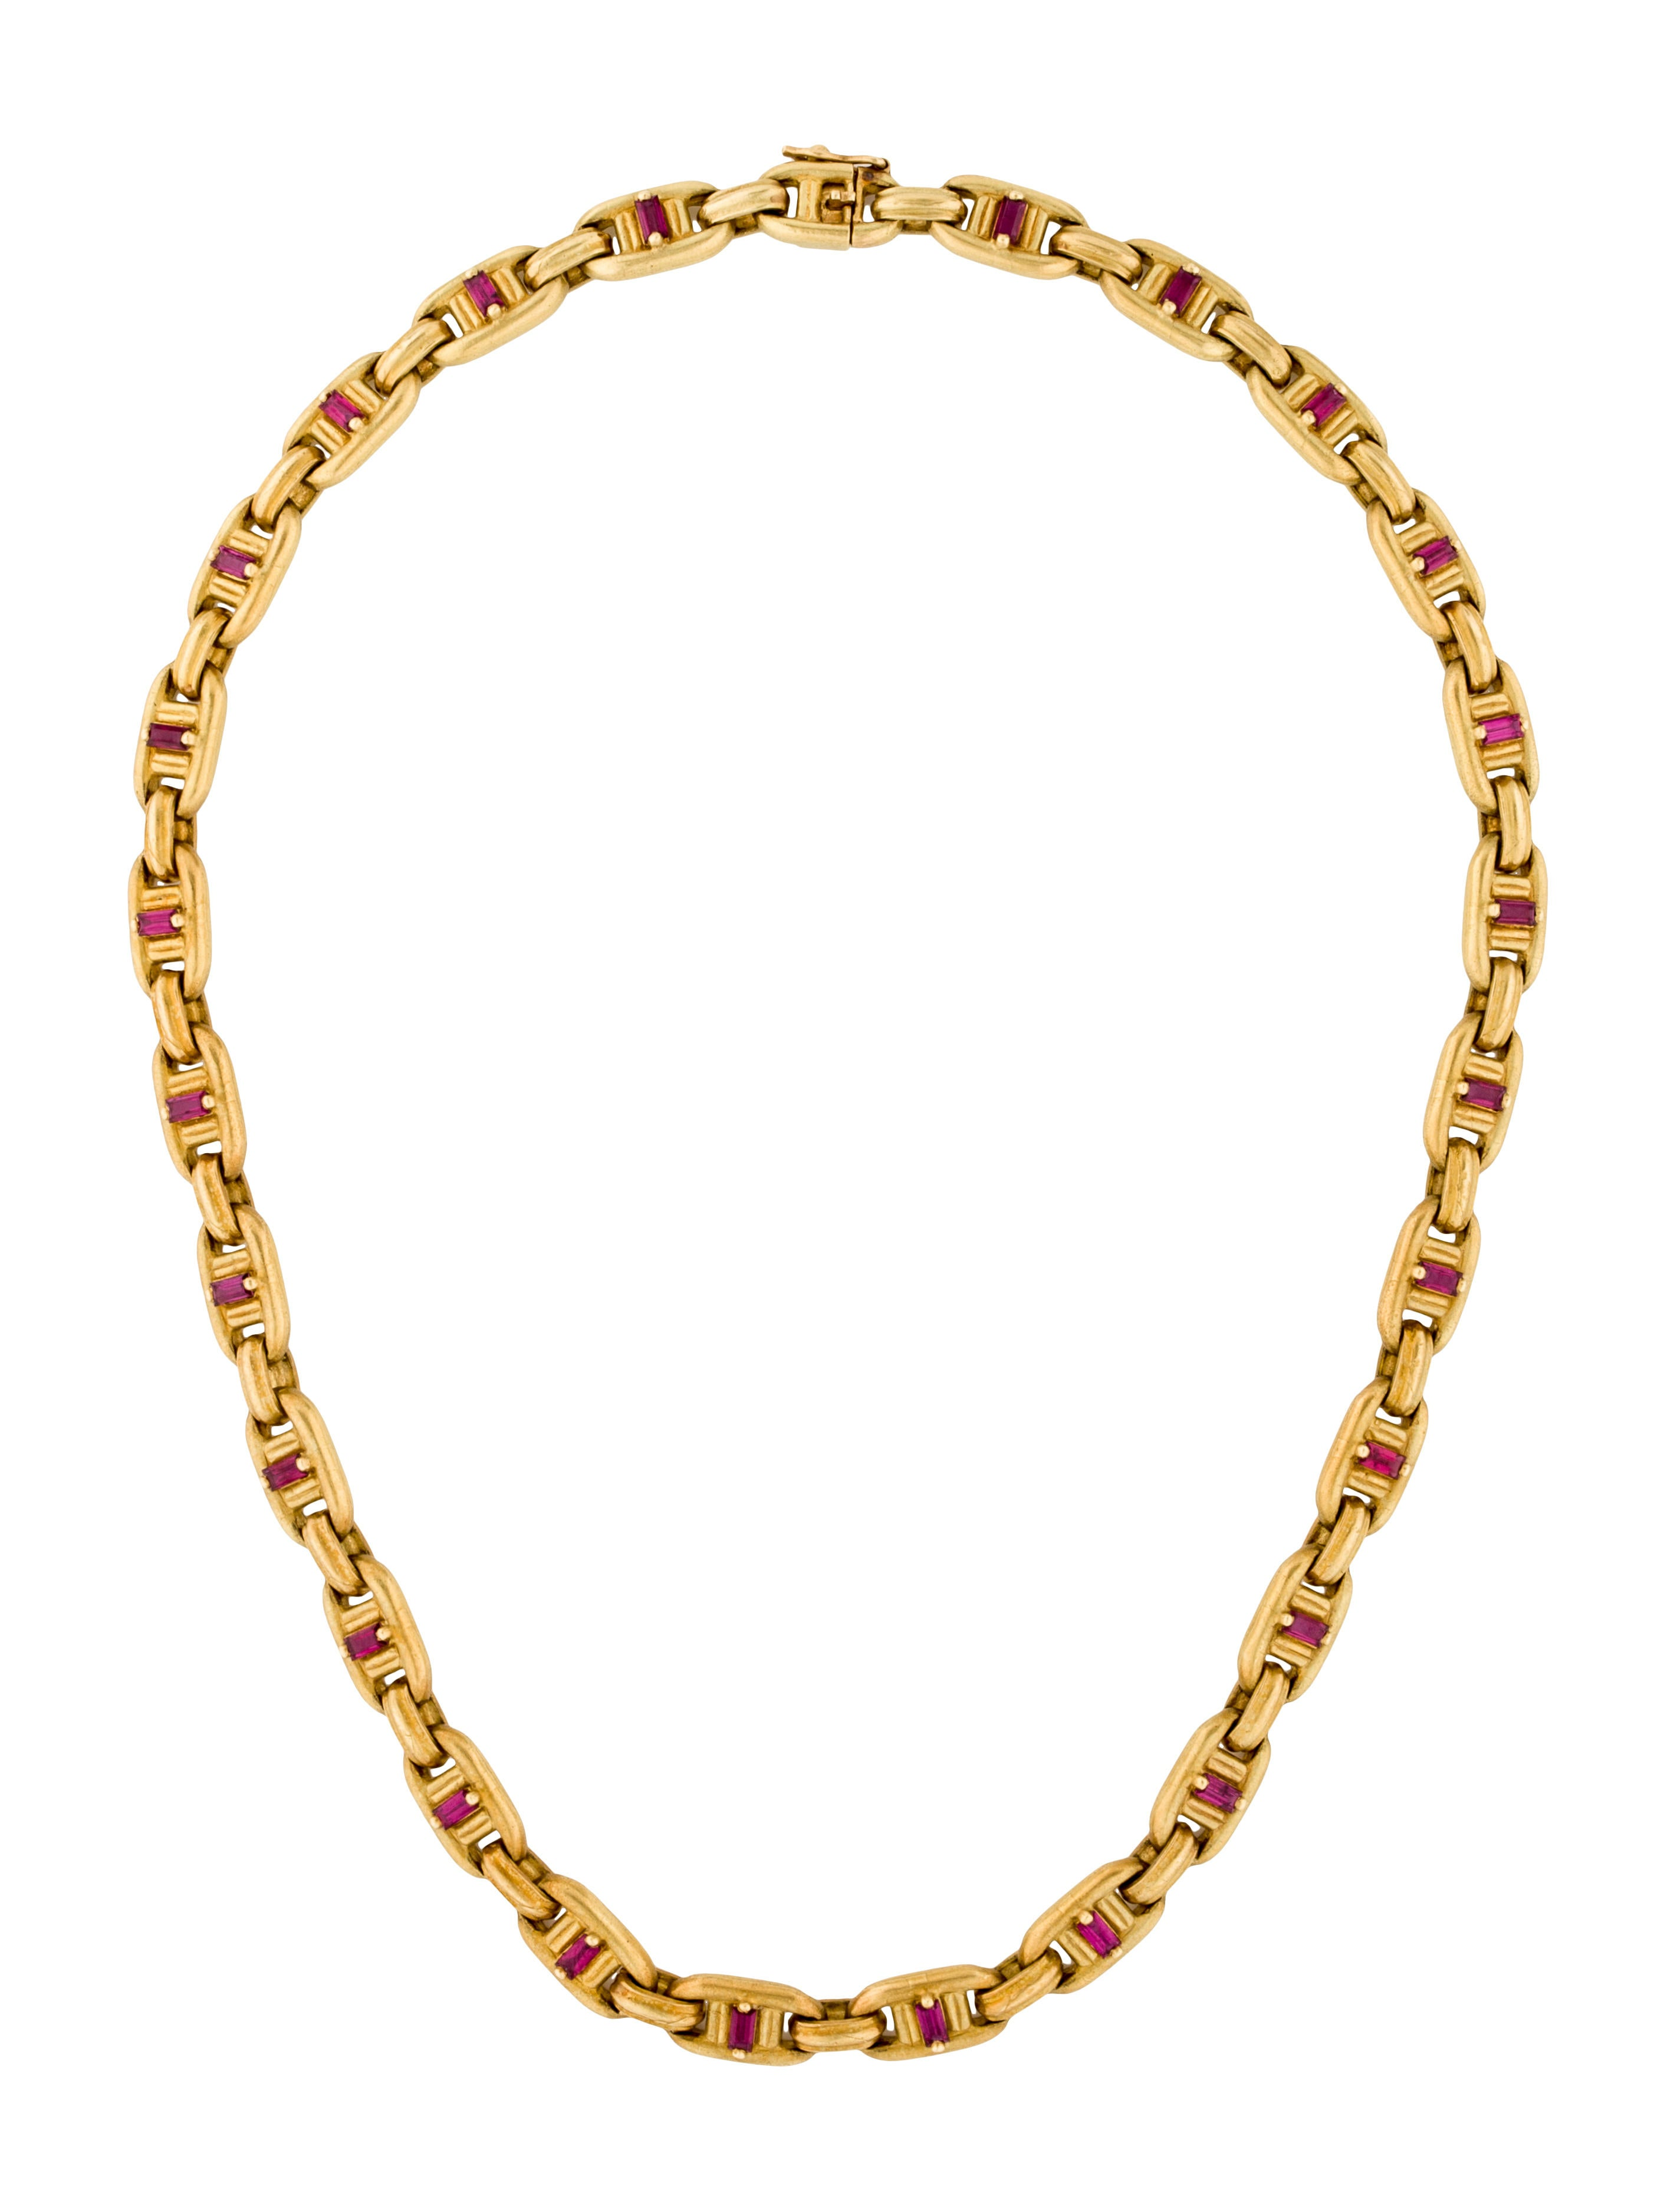 Barry kieselstein cord ruby link chain necklace for Barry kieselstein cord jewelry